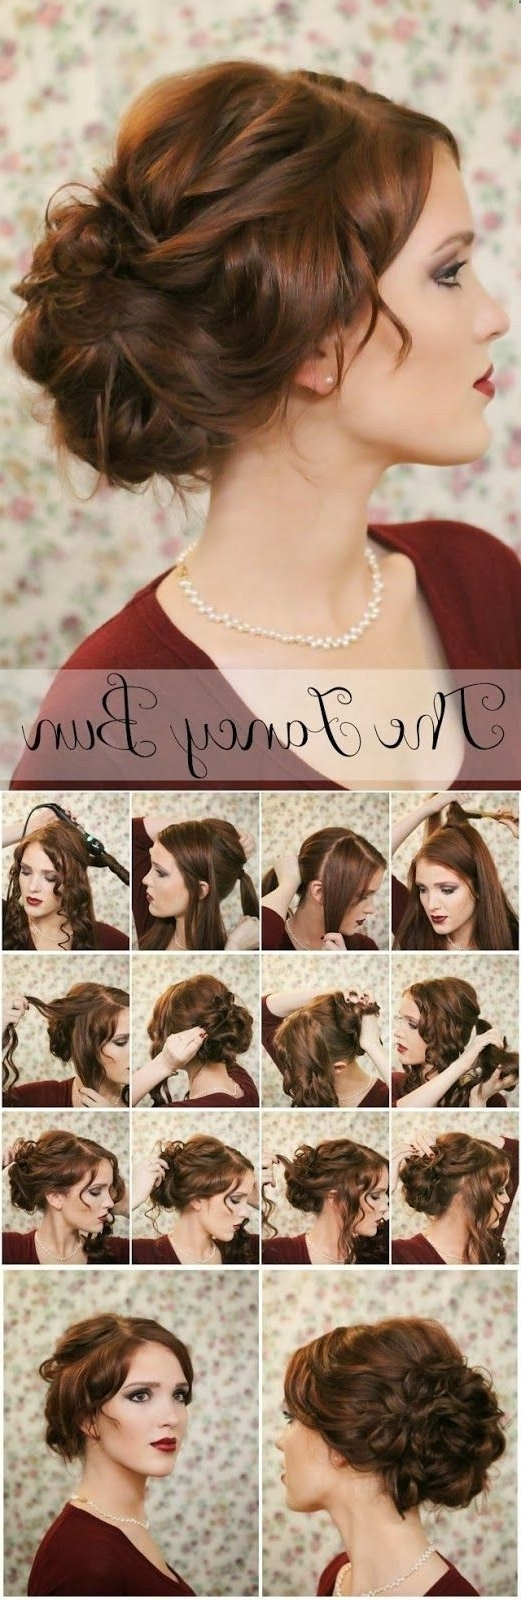 Famous Elegant Wedding Hairstyles For Medium Length Hair With 51 Best Asymmetrical Updos Images On Pinterest (Gallery 14 of 15)